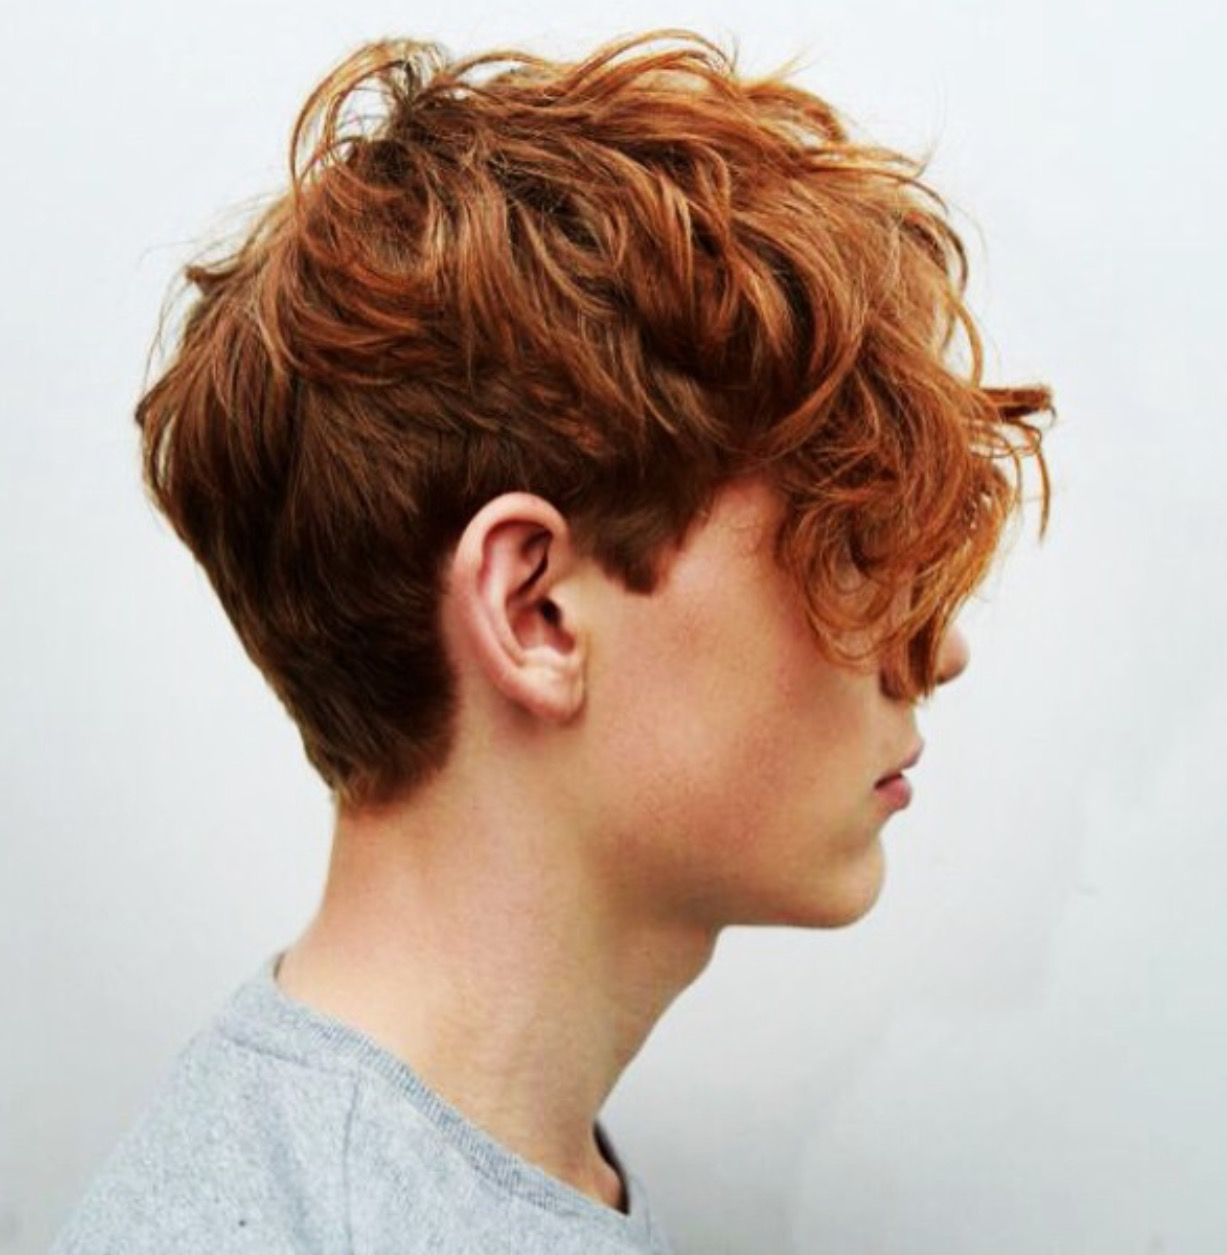 Oblong face haircut men pin by jen jameson on hair and beauty  pinterest  oc short hair